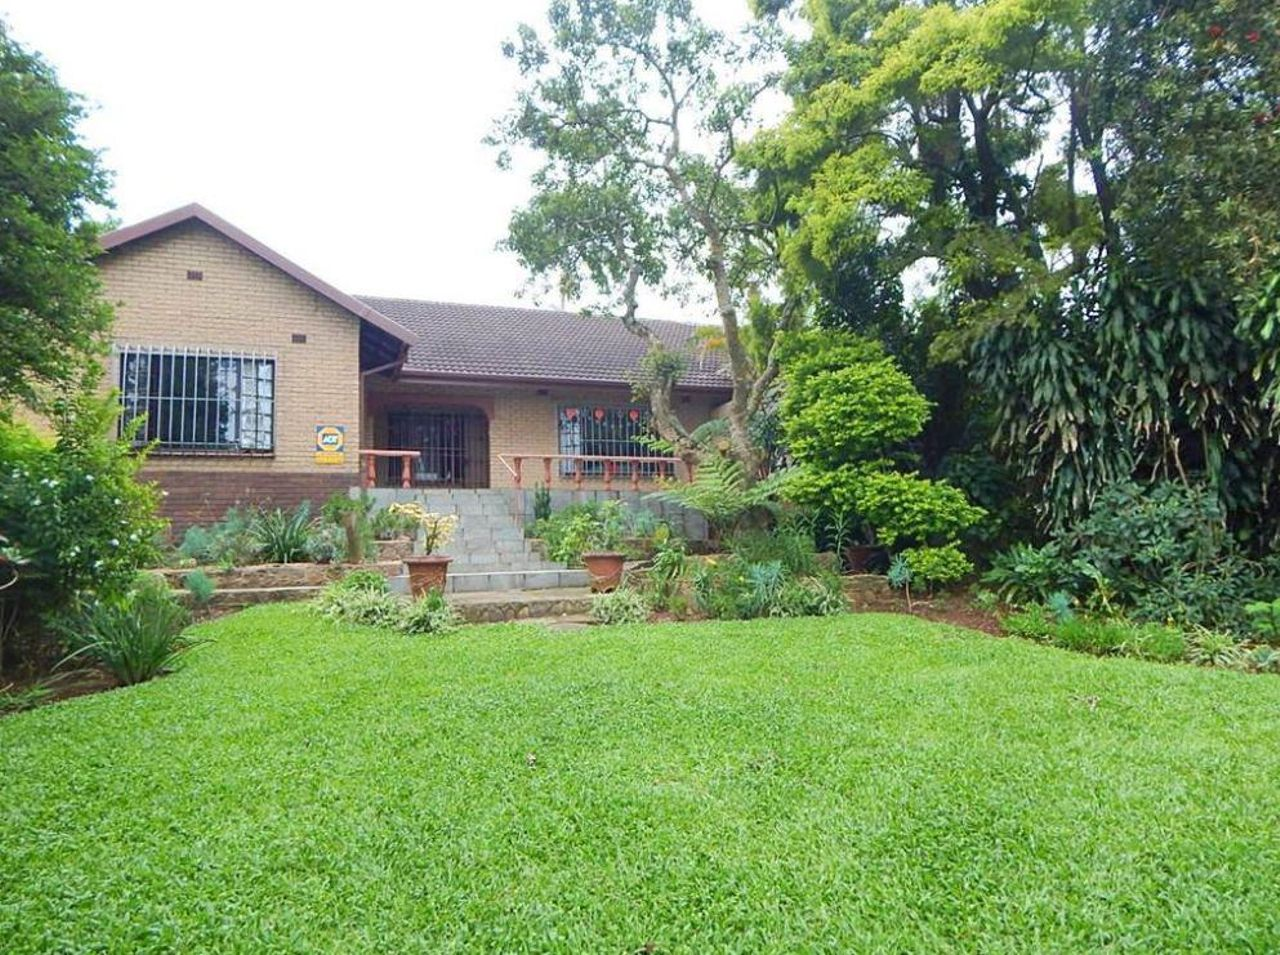 4 Bedroom Townhouse For Sale in Kloof | Acutts Estate Agents